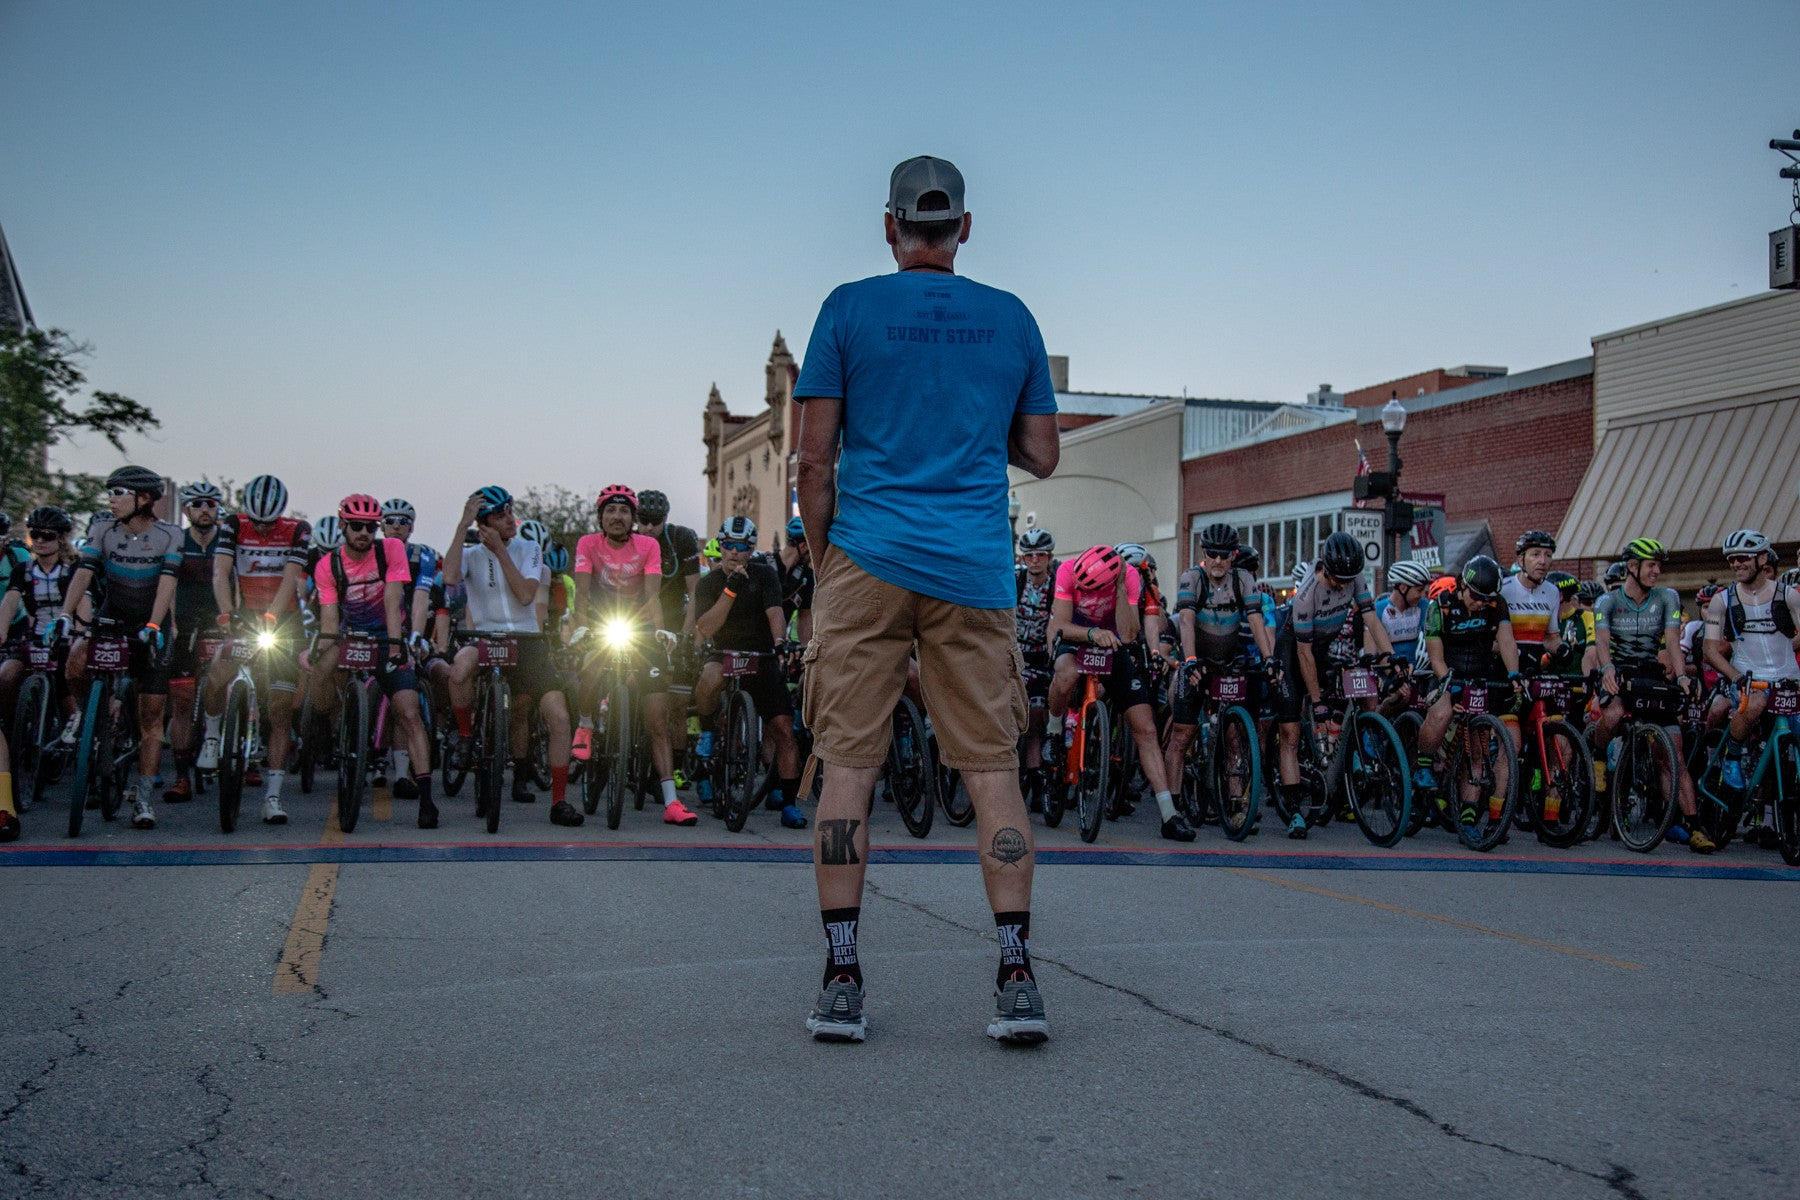 Start of 2019 Dirty Kanza 200